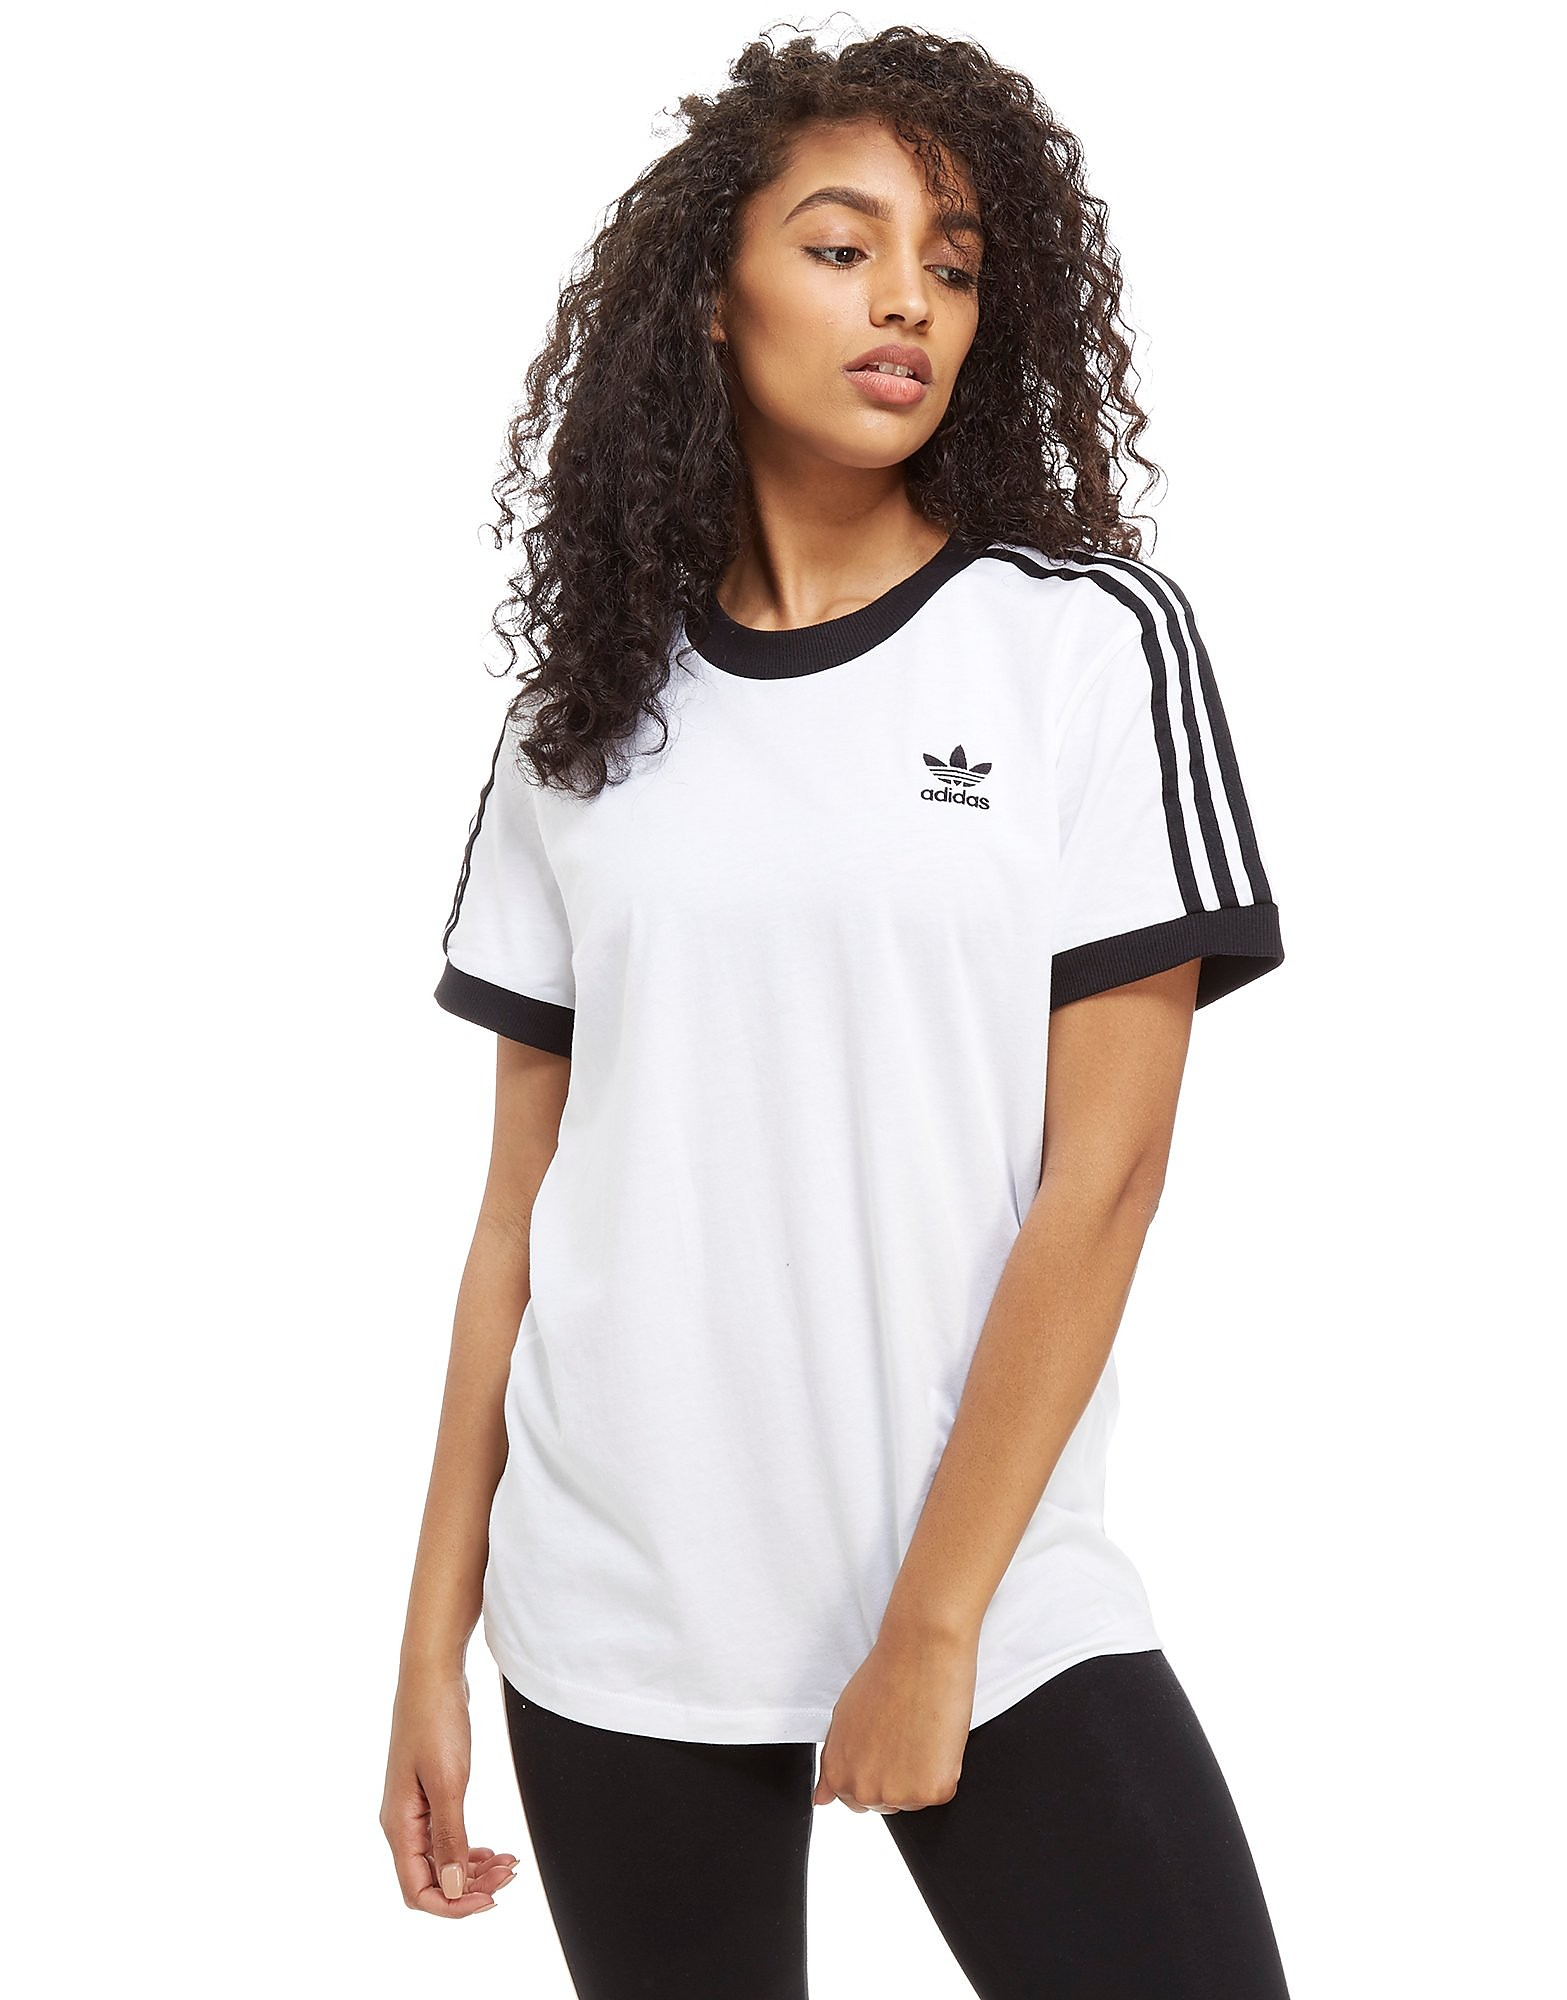 Womenu0026#39;s Fashion | Trainers Clothing u0026 Sportswear | JD Sports